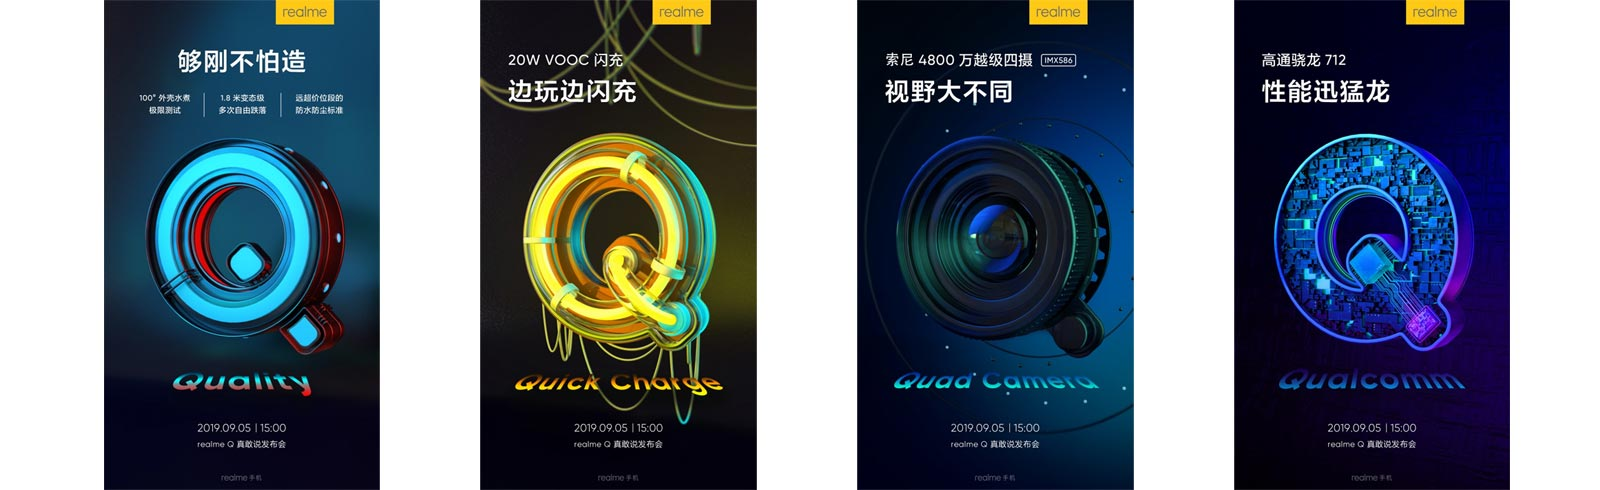 Realme Q further specifications are confirmed